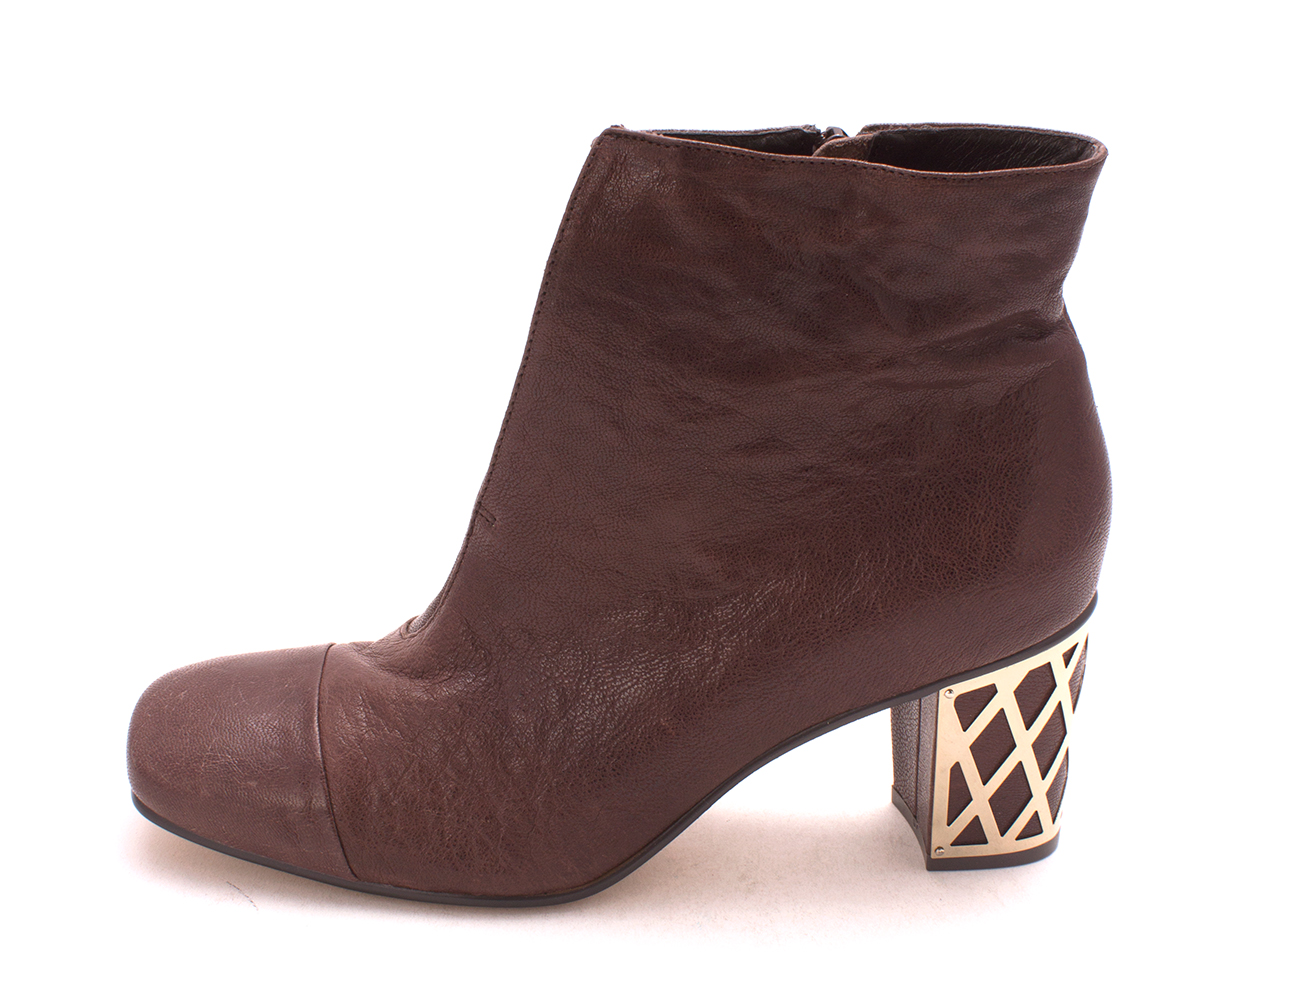 Nina Womens Vignette Closed Toe Ankle Fashion Boots  139e5ecd6e0a